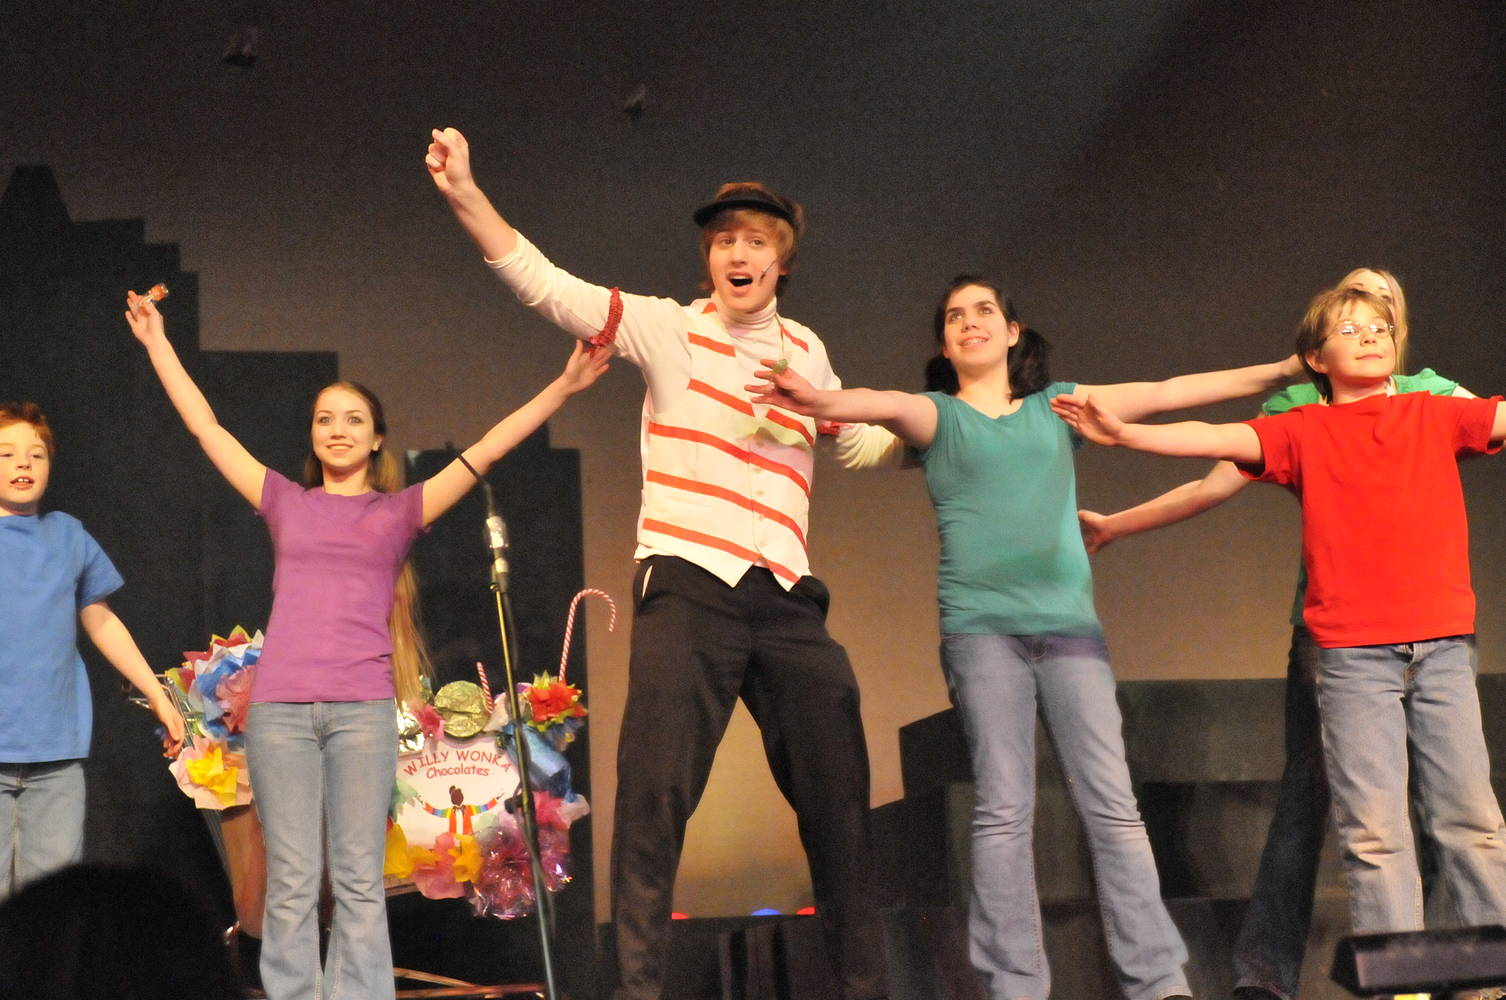 Willy Wonka - Academy Theatre - April 2009 by Yvonne Shaffer